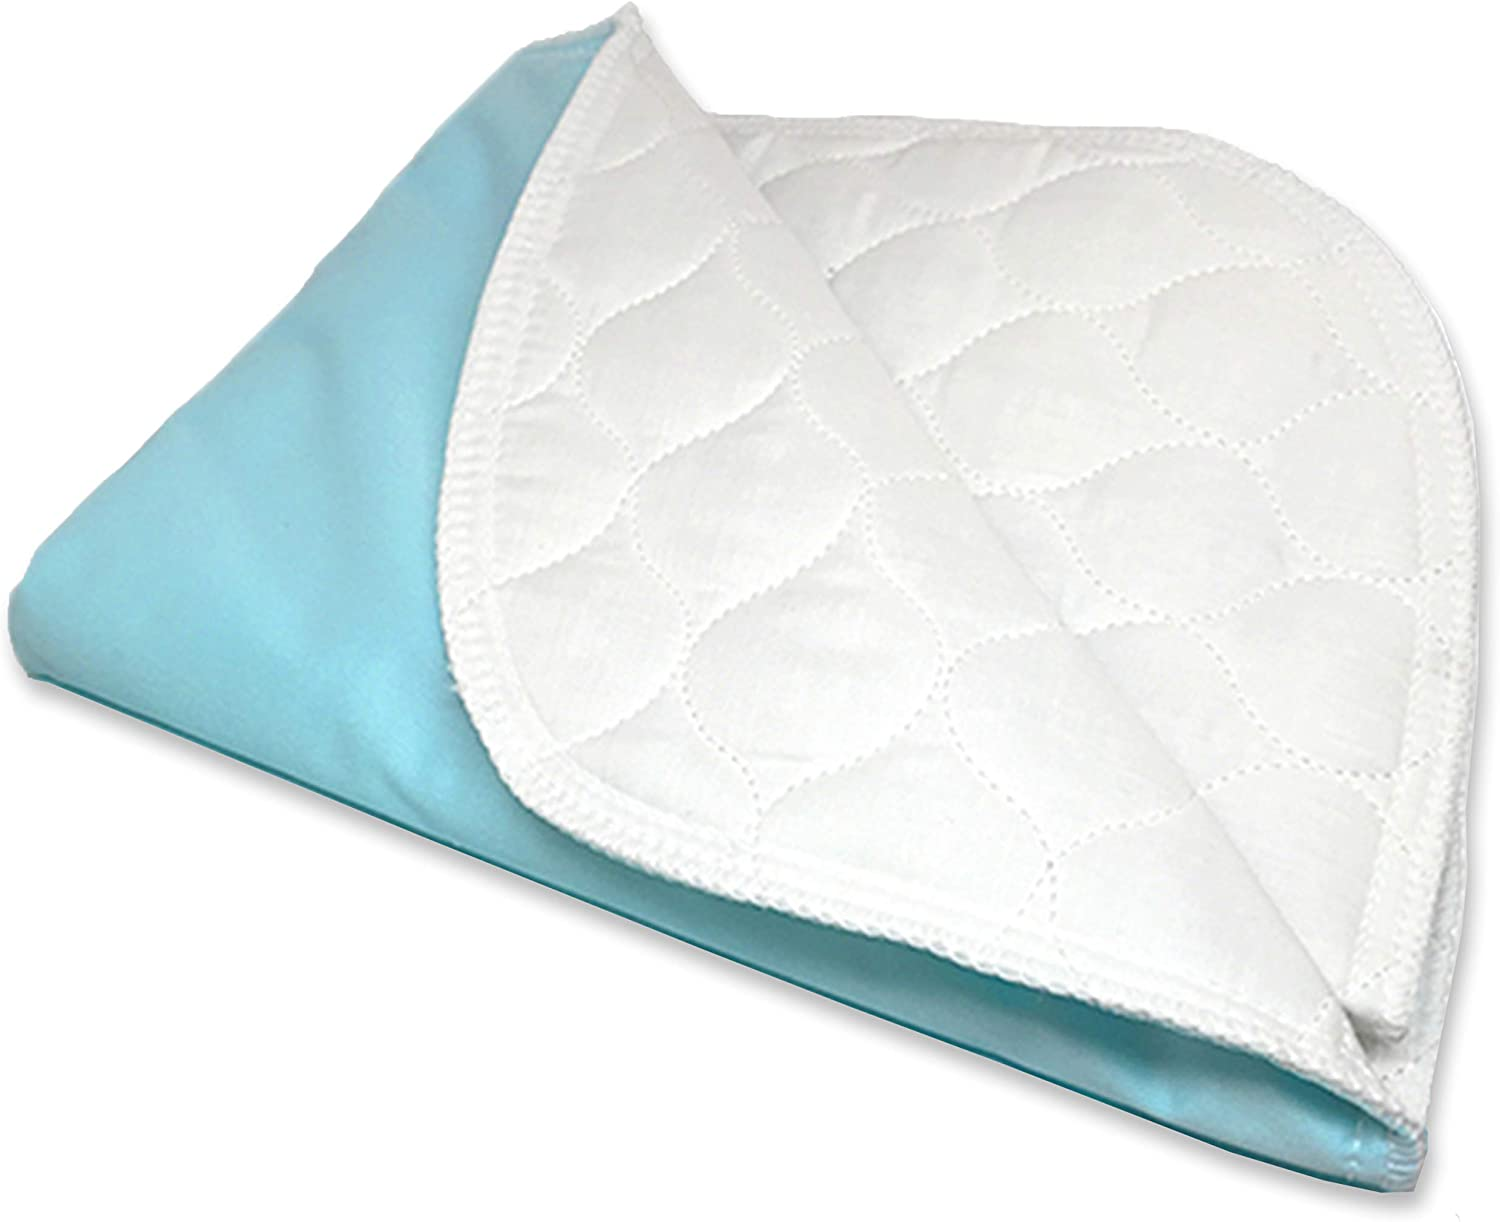 "Ultra Soft 4-Layer Washable and Reusable Incontinence Bed Pad - Waterproof Bed Pads, 24""X36"": Health & Personal Care"